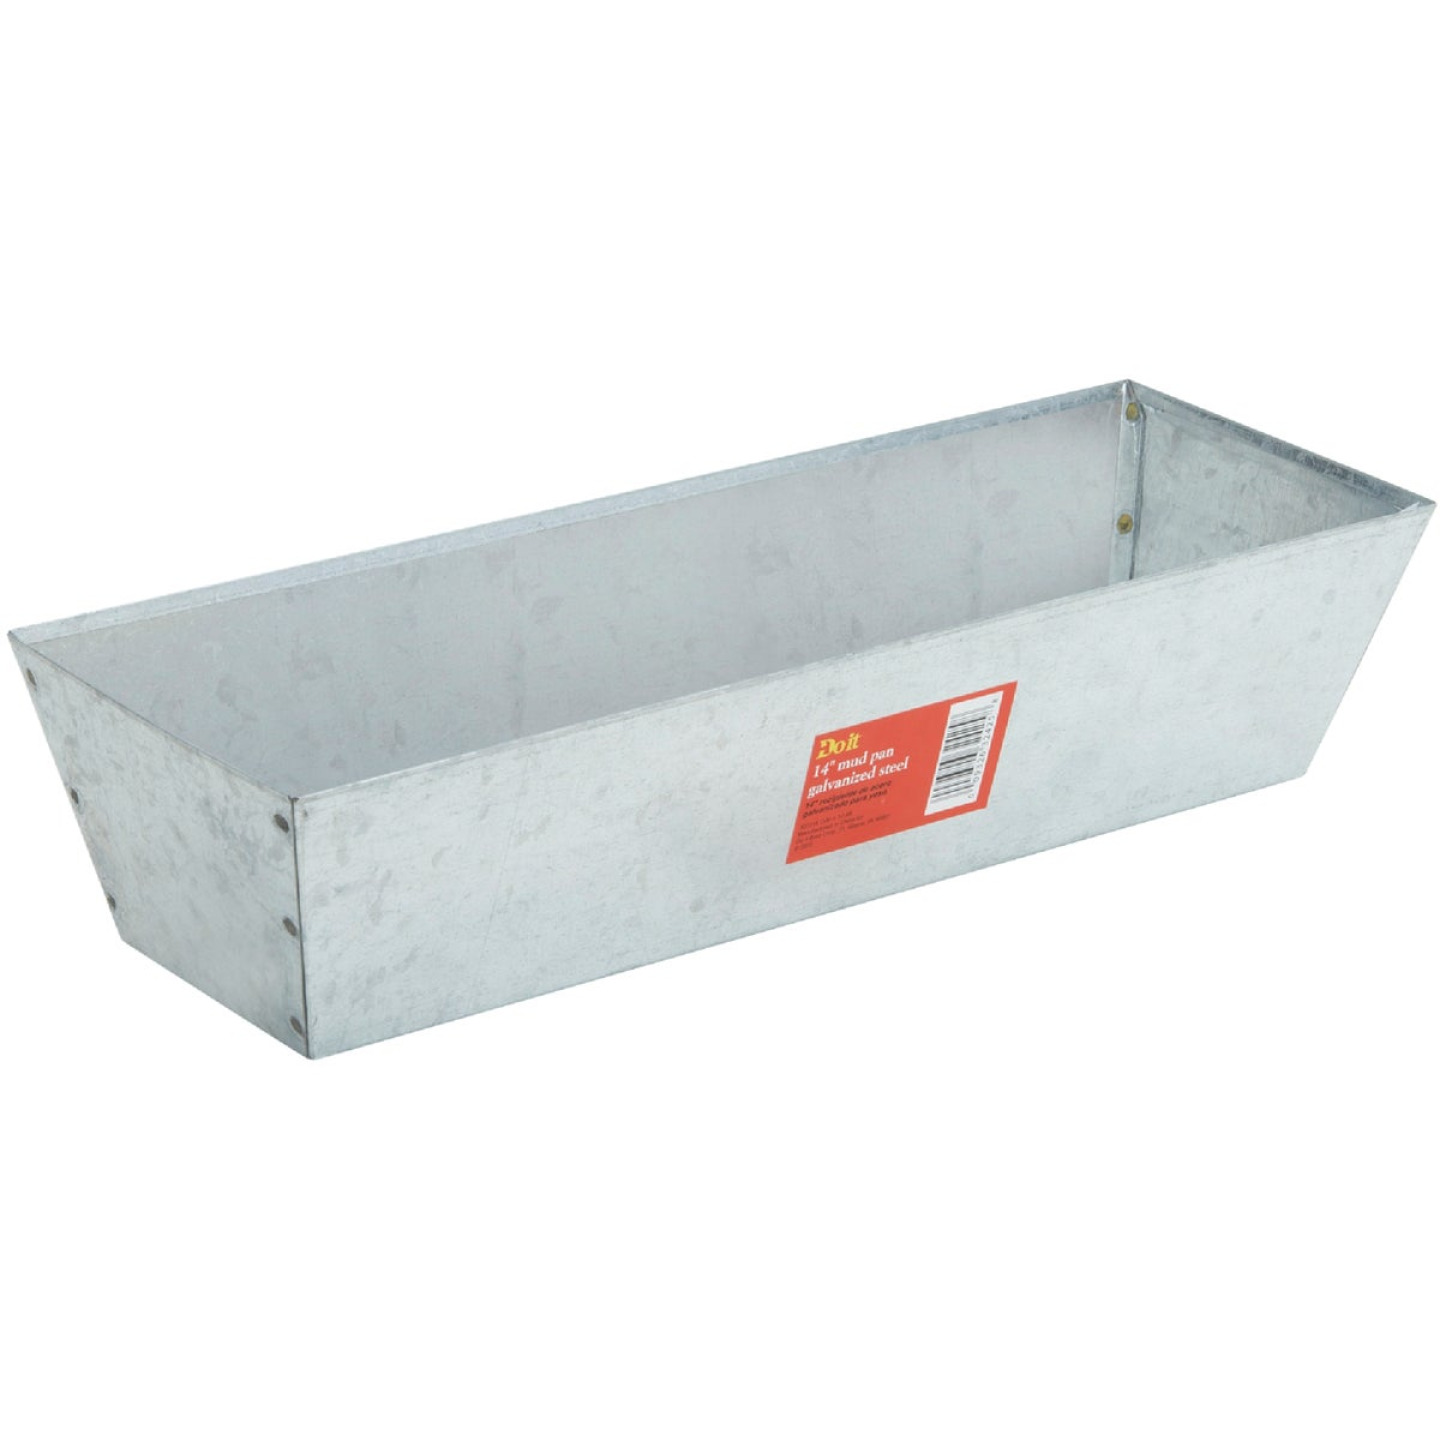 Do it 14 In. Galvanized Steel Mud Pan Image 2